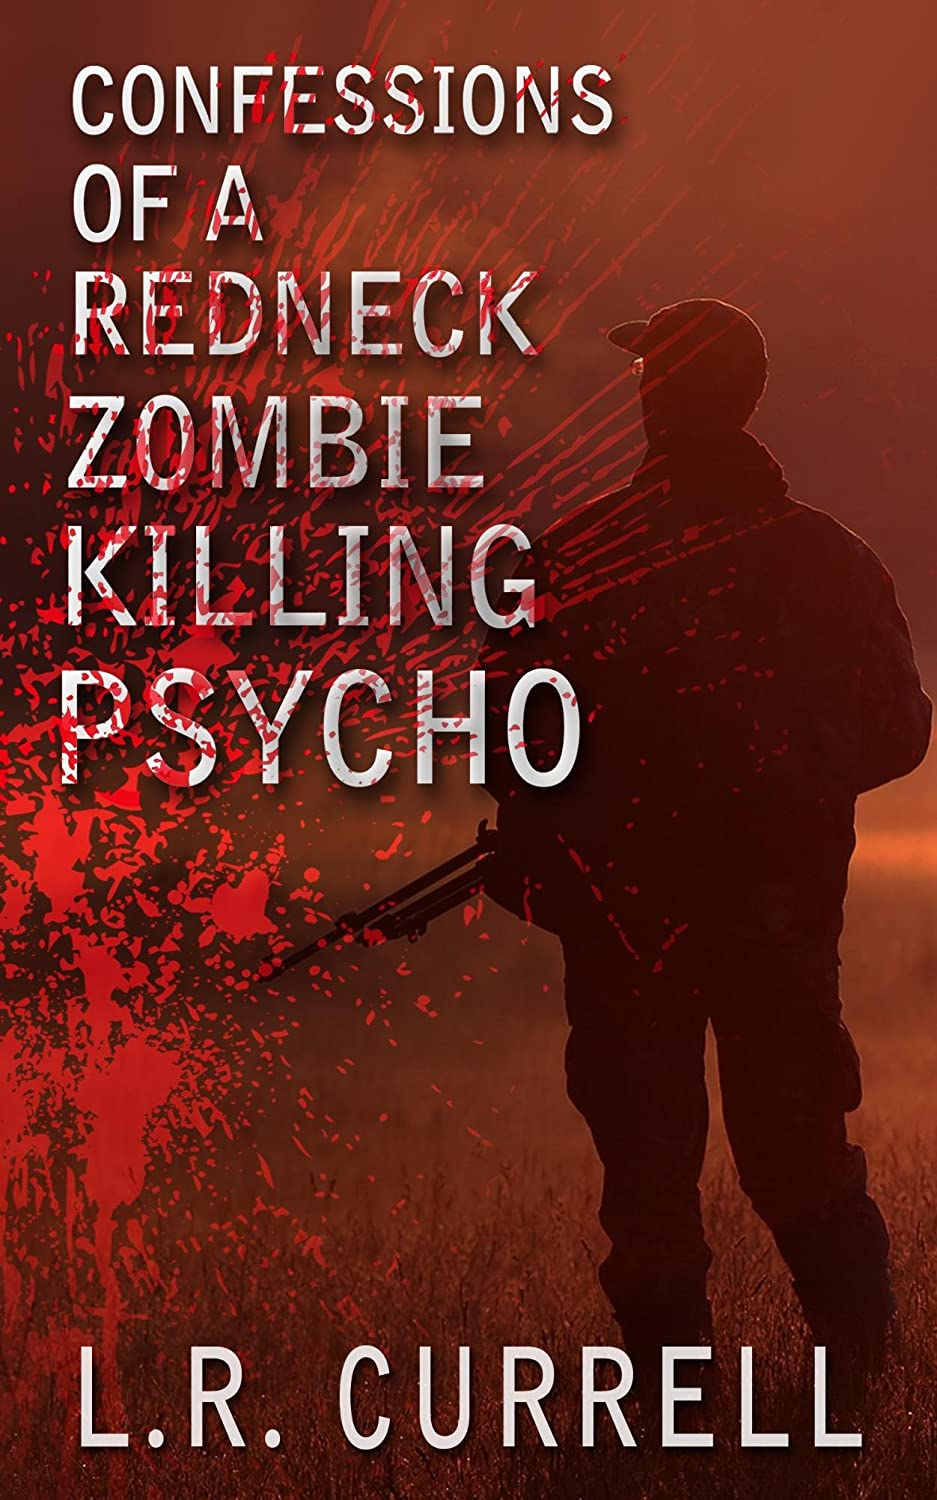 Confessions of a red neck zombie killing psycho